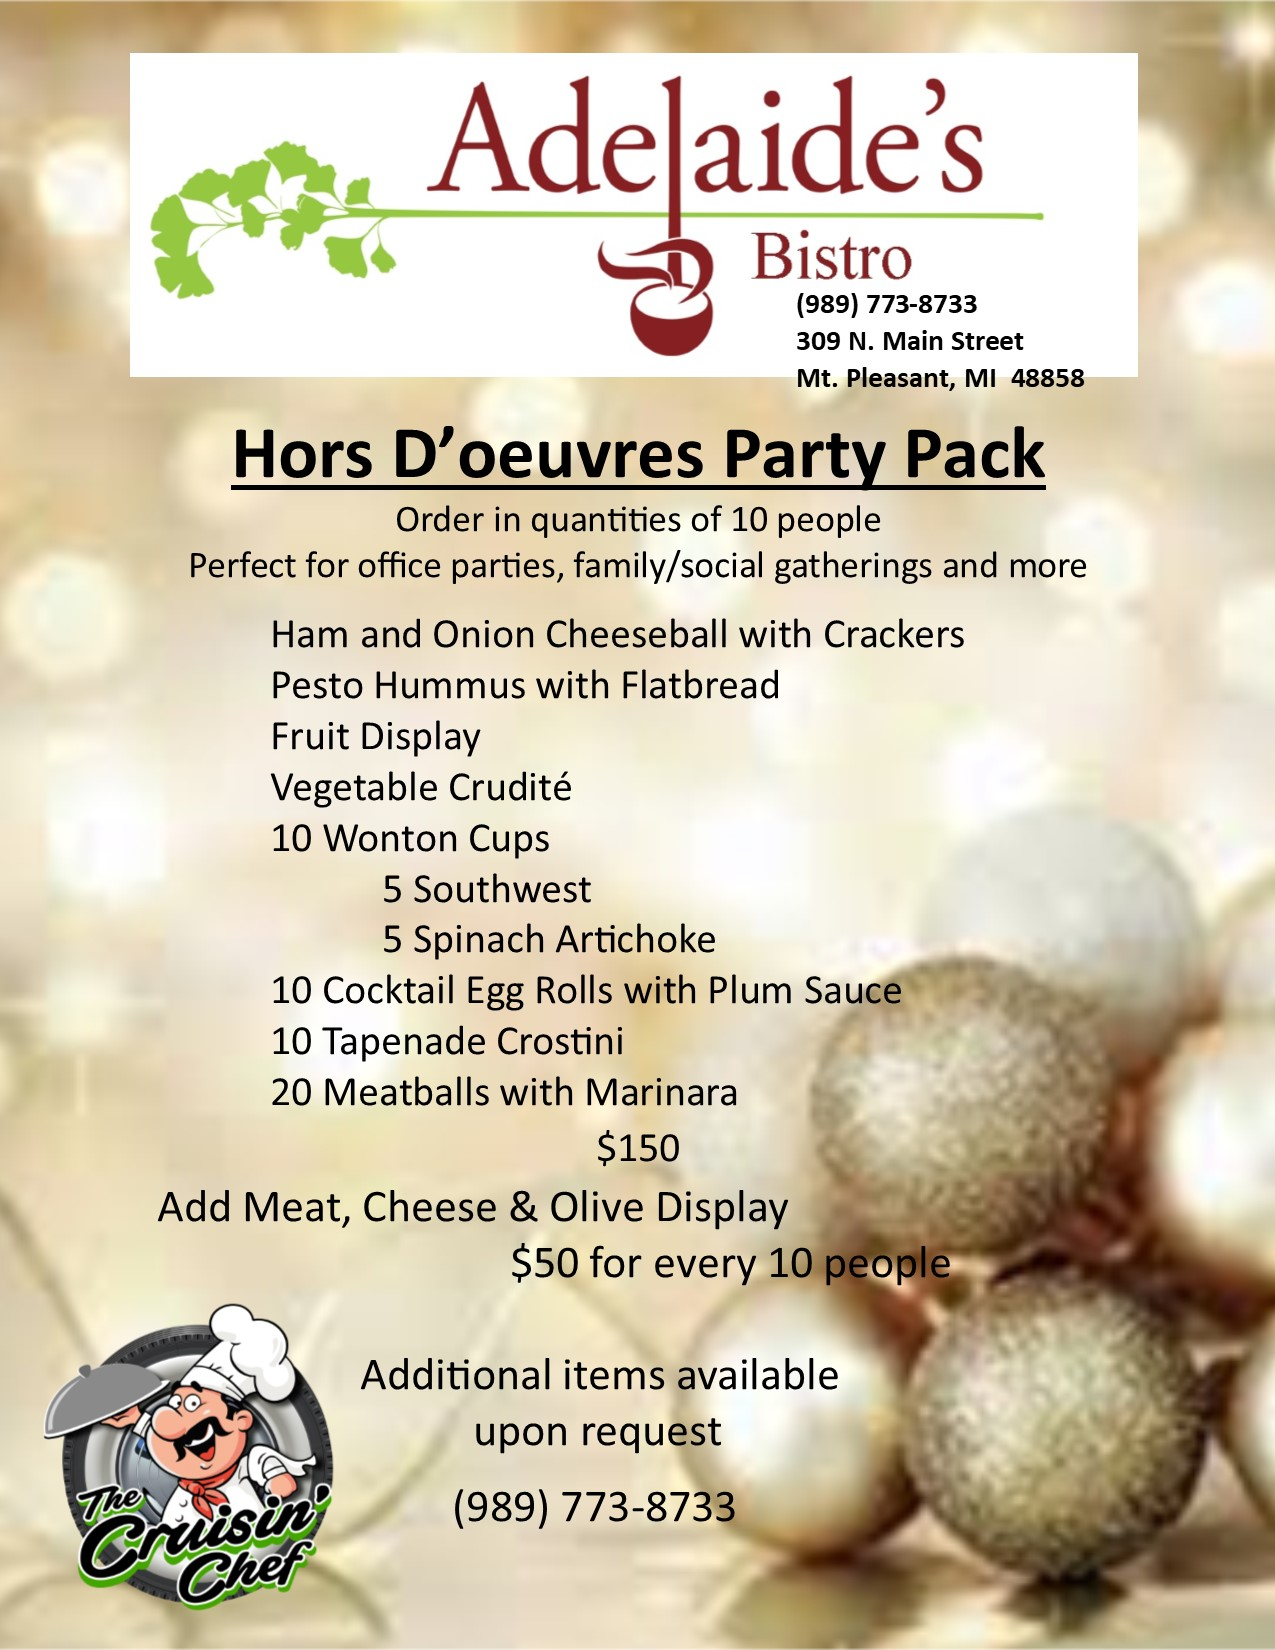 Hors D'oeuvres Party Pack.jpg